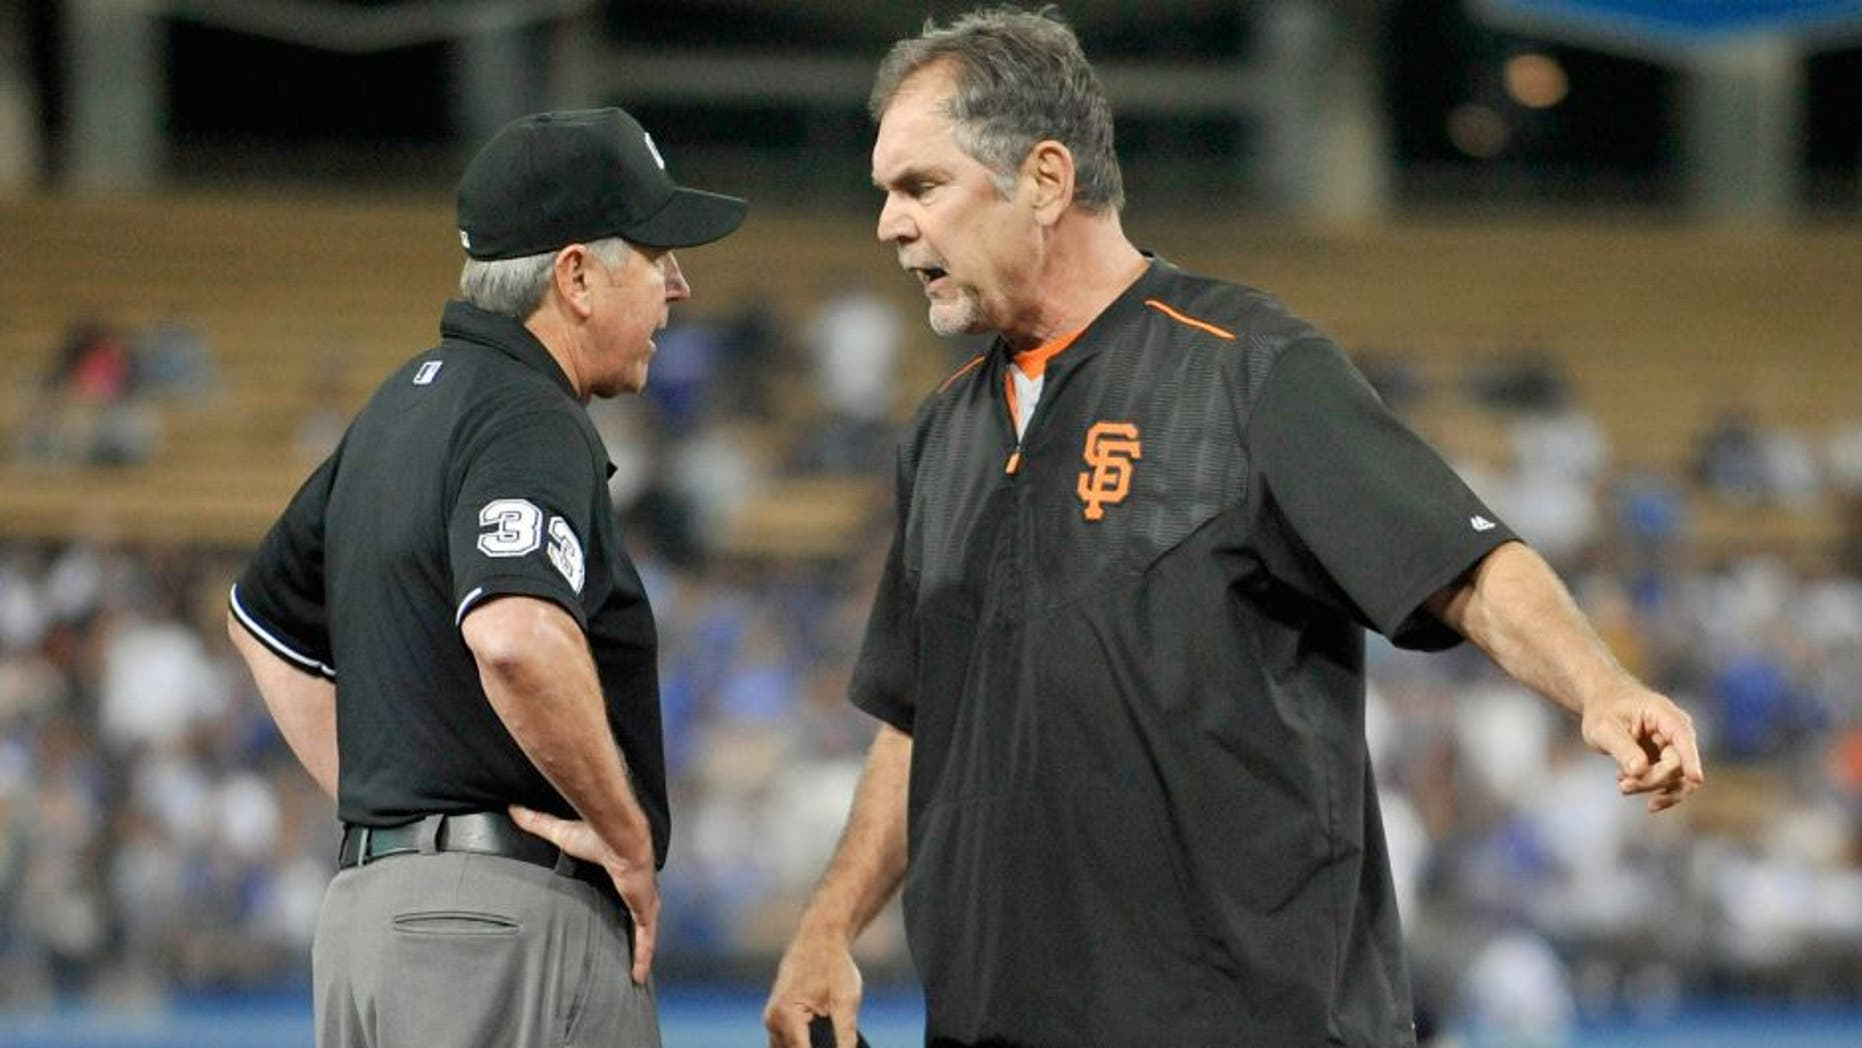 September 2, 2015; Los Angeles, CA, USA; San Francisco Giants manager Bruce Bochy (15) argues a call with umpire Mike Winters in the eighth inning at Dodger Stadium. Mandatory Credit: Gary A. Vasquez-USA TODAY Sports